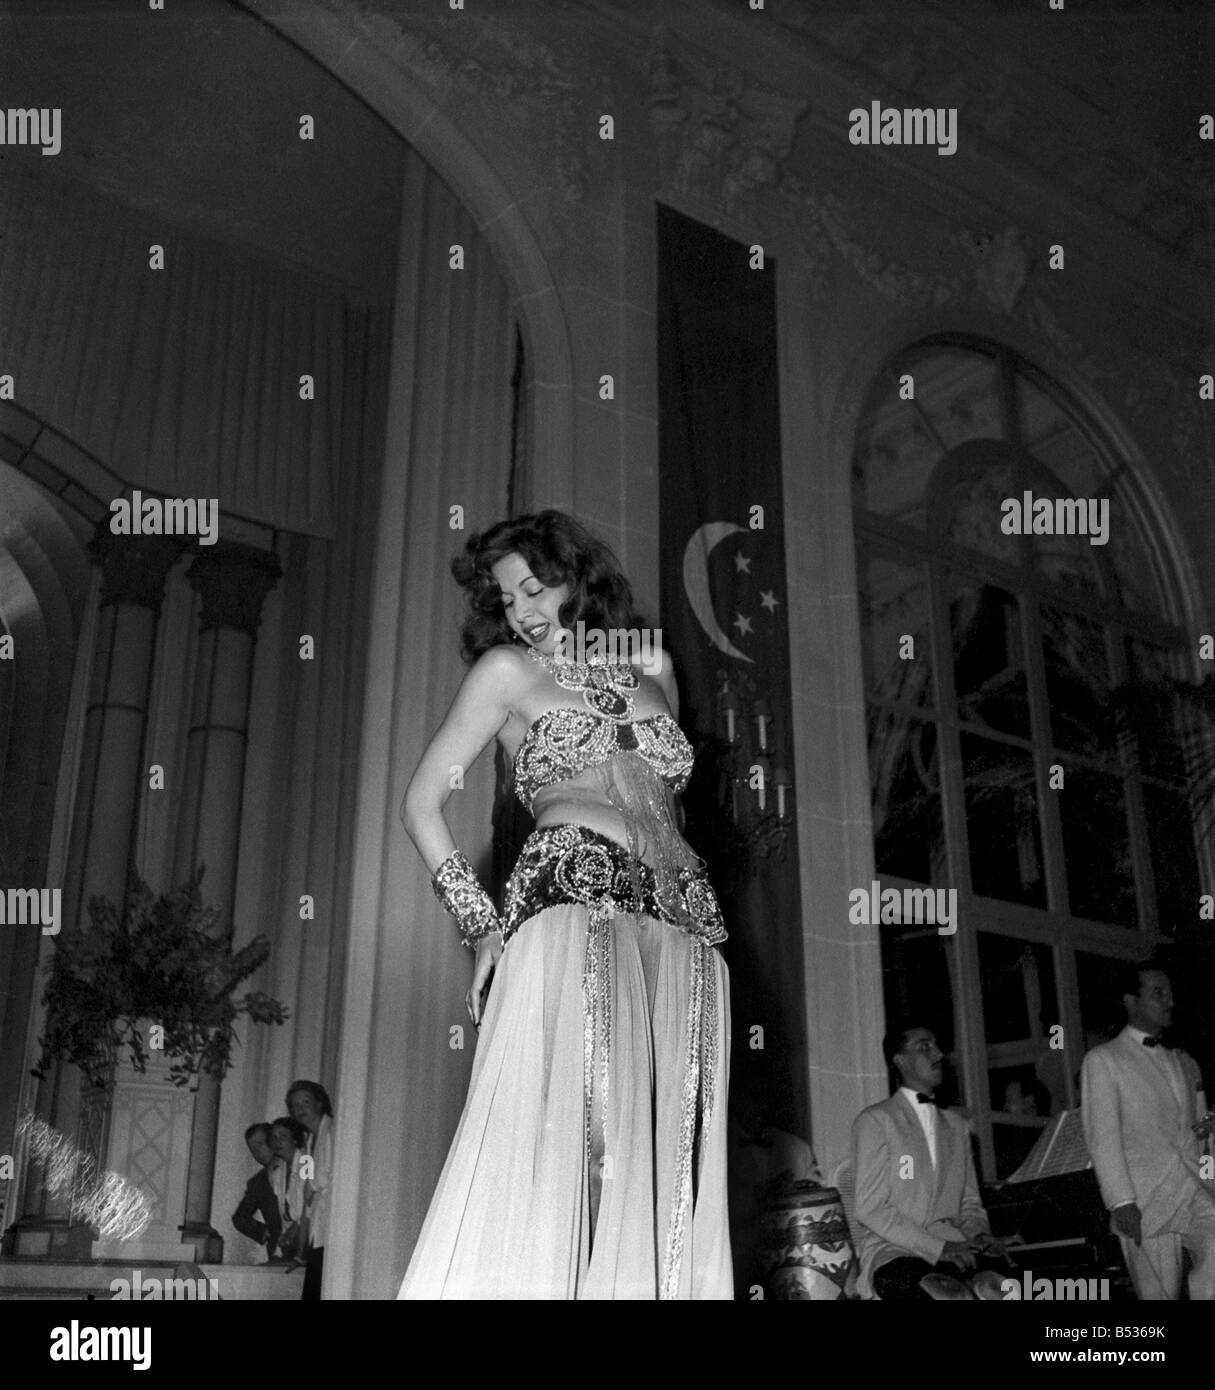 Samia Gamal Dances a Belly Dance at Franco Egyptian Gala in Deauville Casino before HM King Farouk. August 1950 - Stock Image